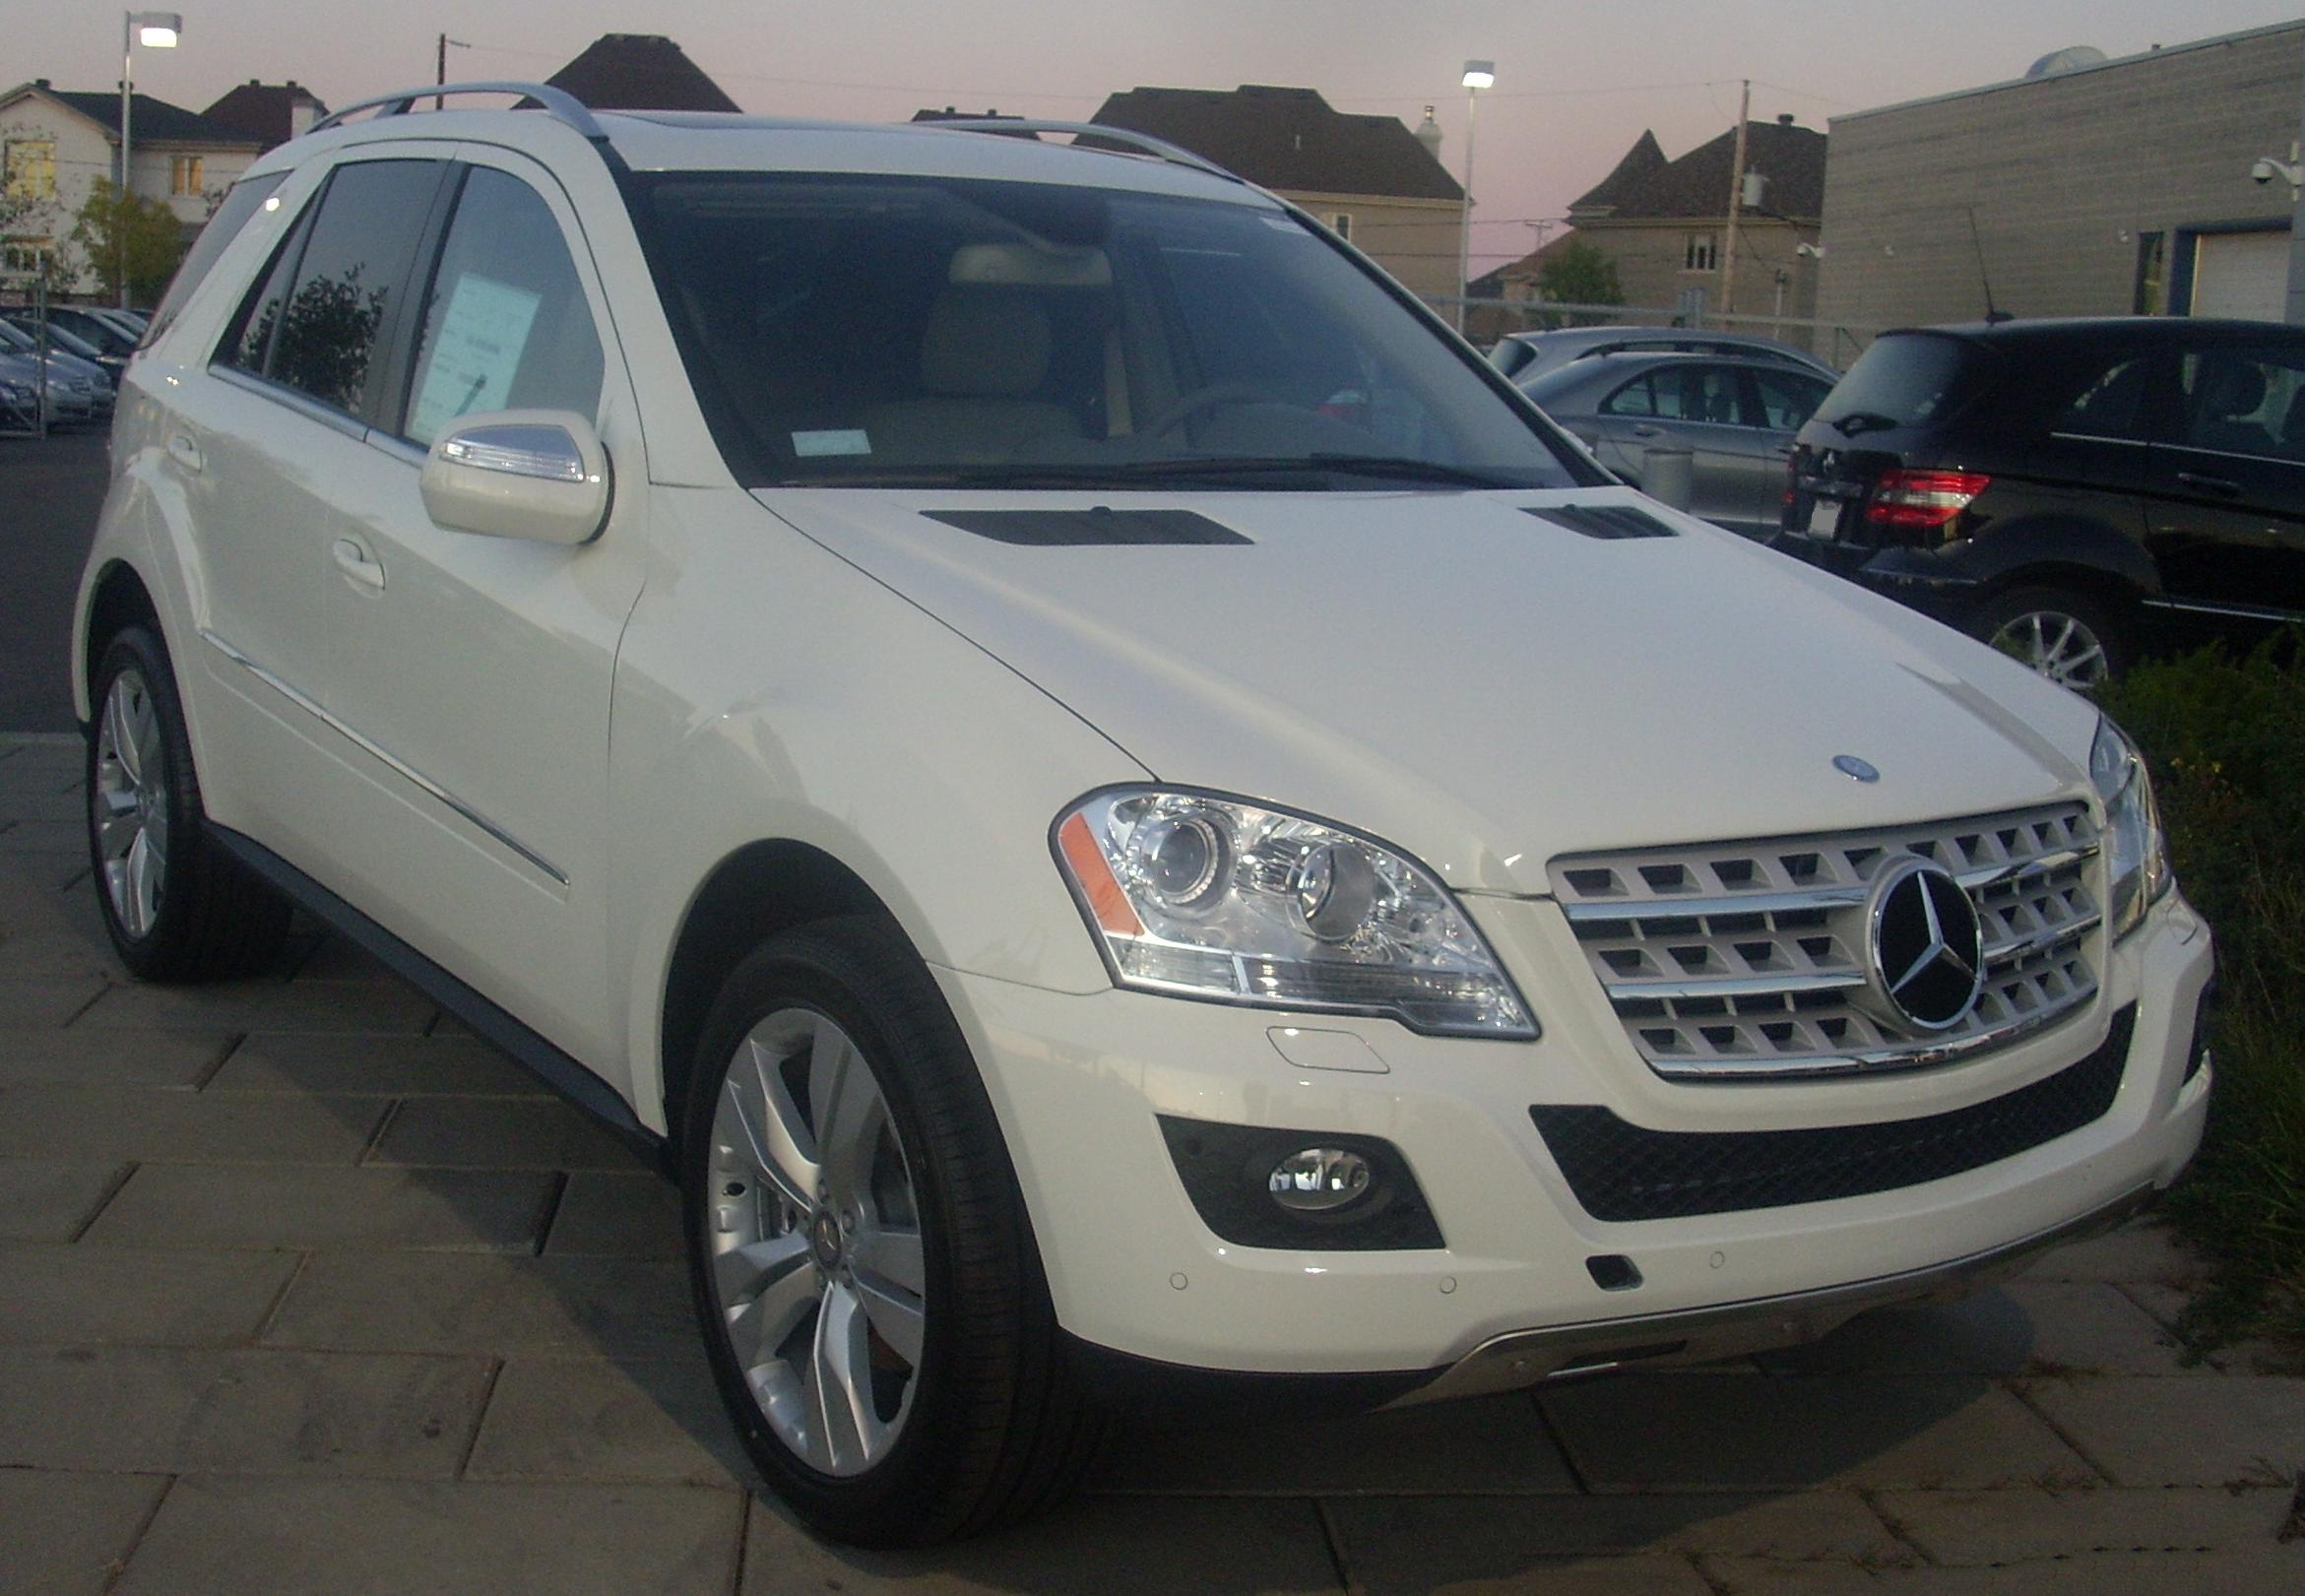 file 39 09 mercedes benz ml350 jpg wikimedia commons